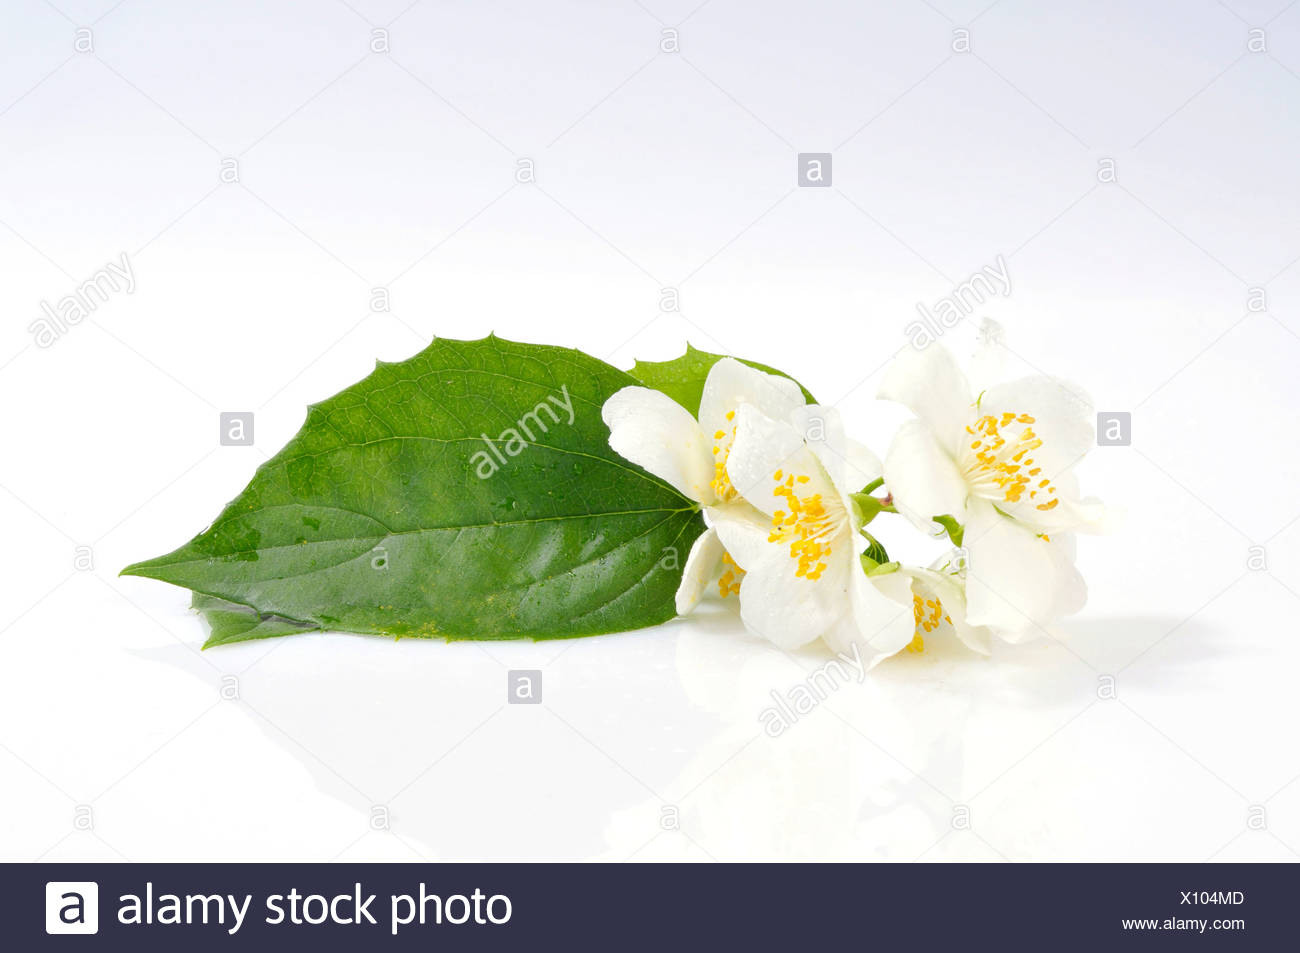 Common White Jasmine (Jasminum officinale), flowers and a leaf - Stock Image